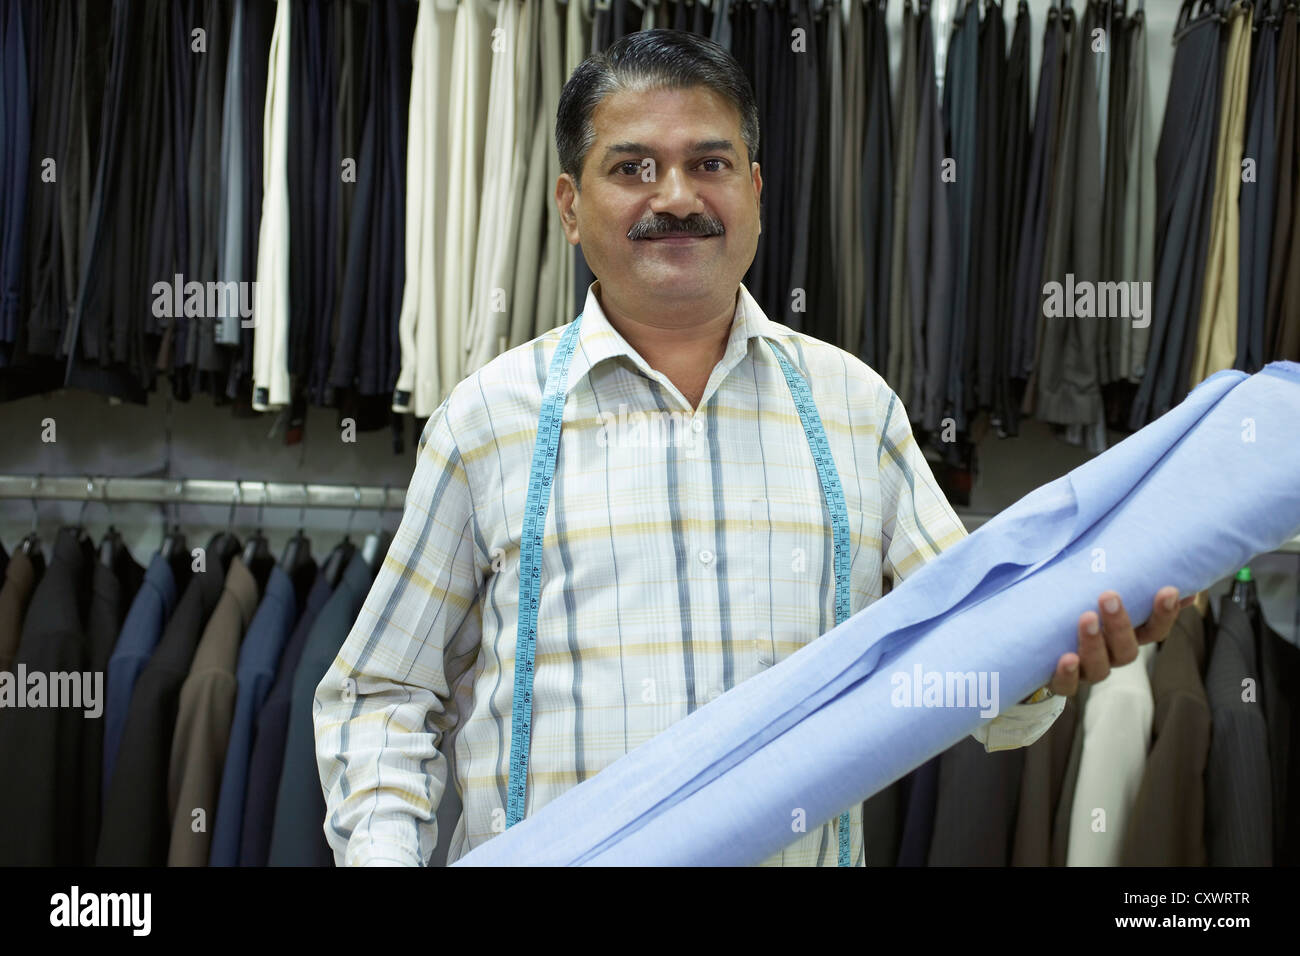 Tailor holding fabric in shop - Stock Image